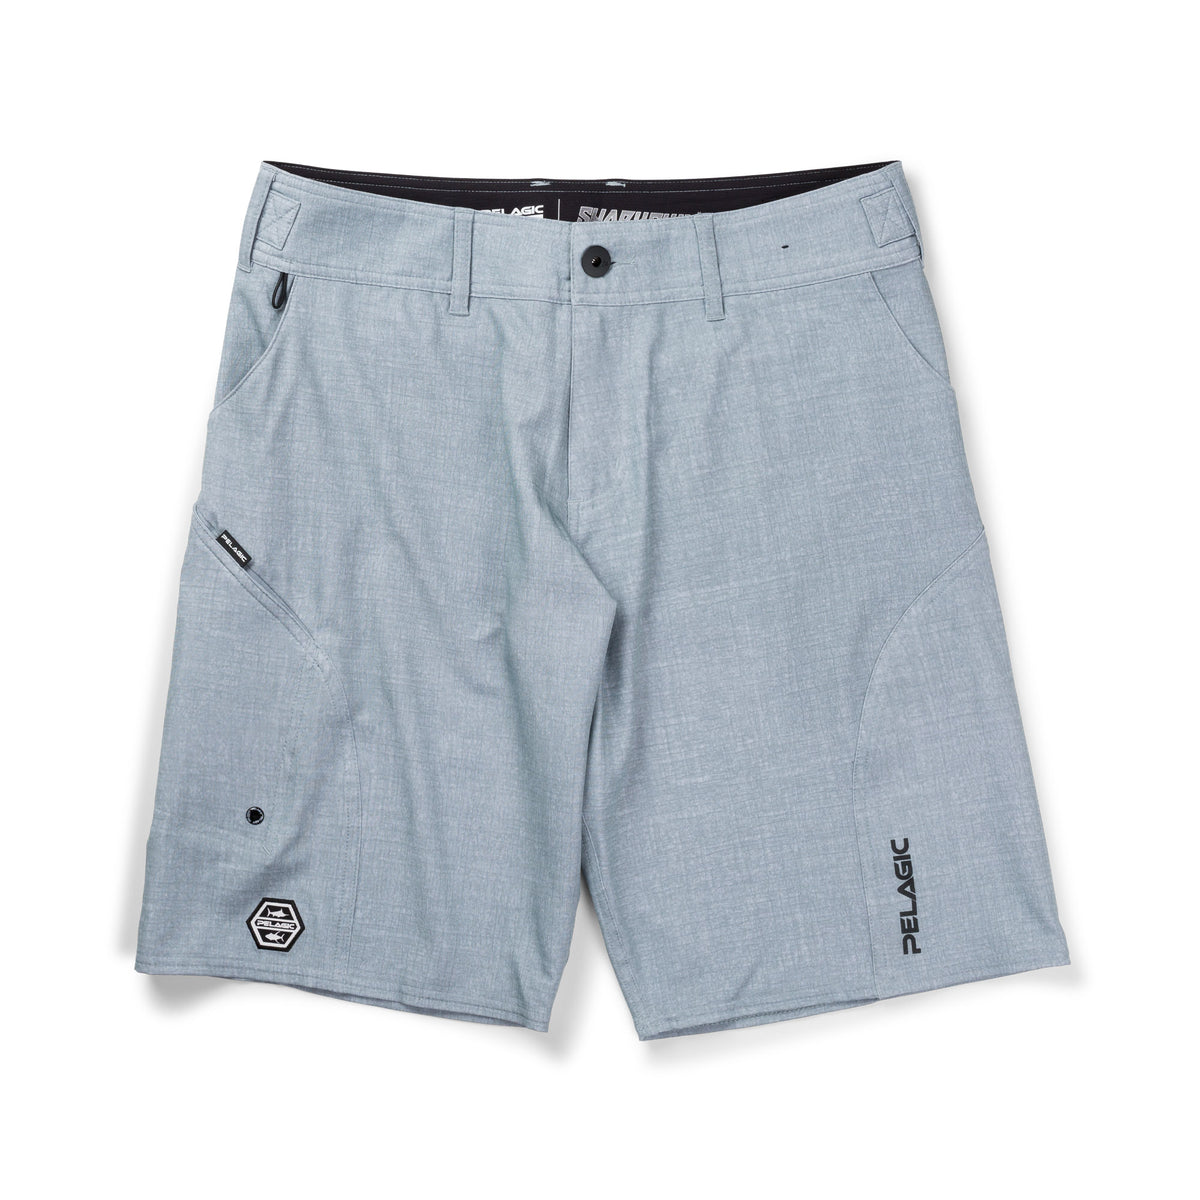 Sharkskin Pro Fishing Shorts Big Image - 1